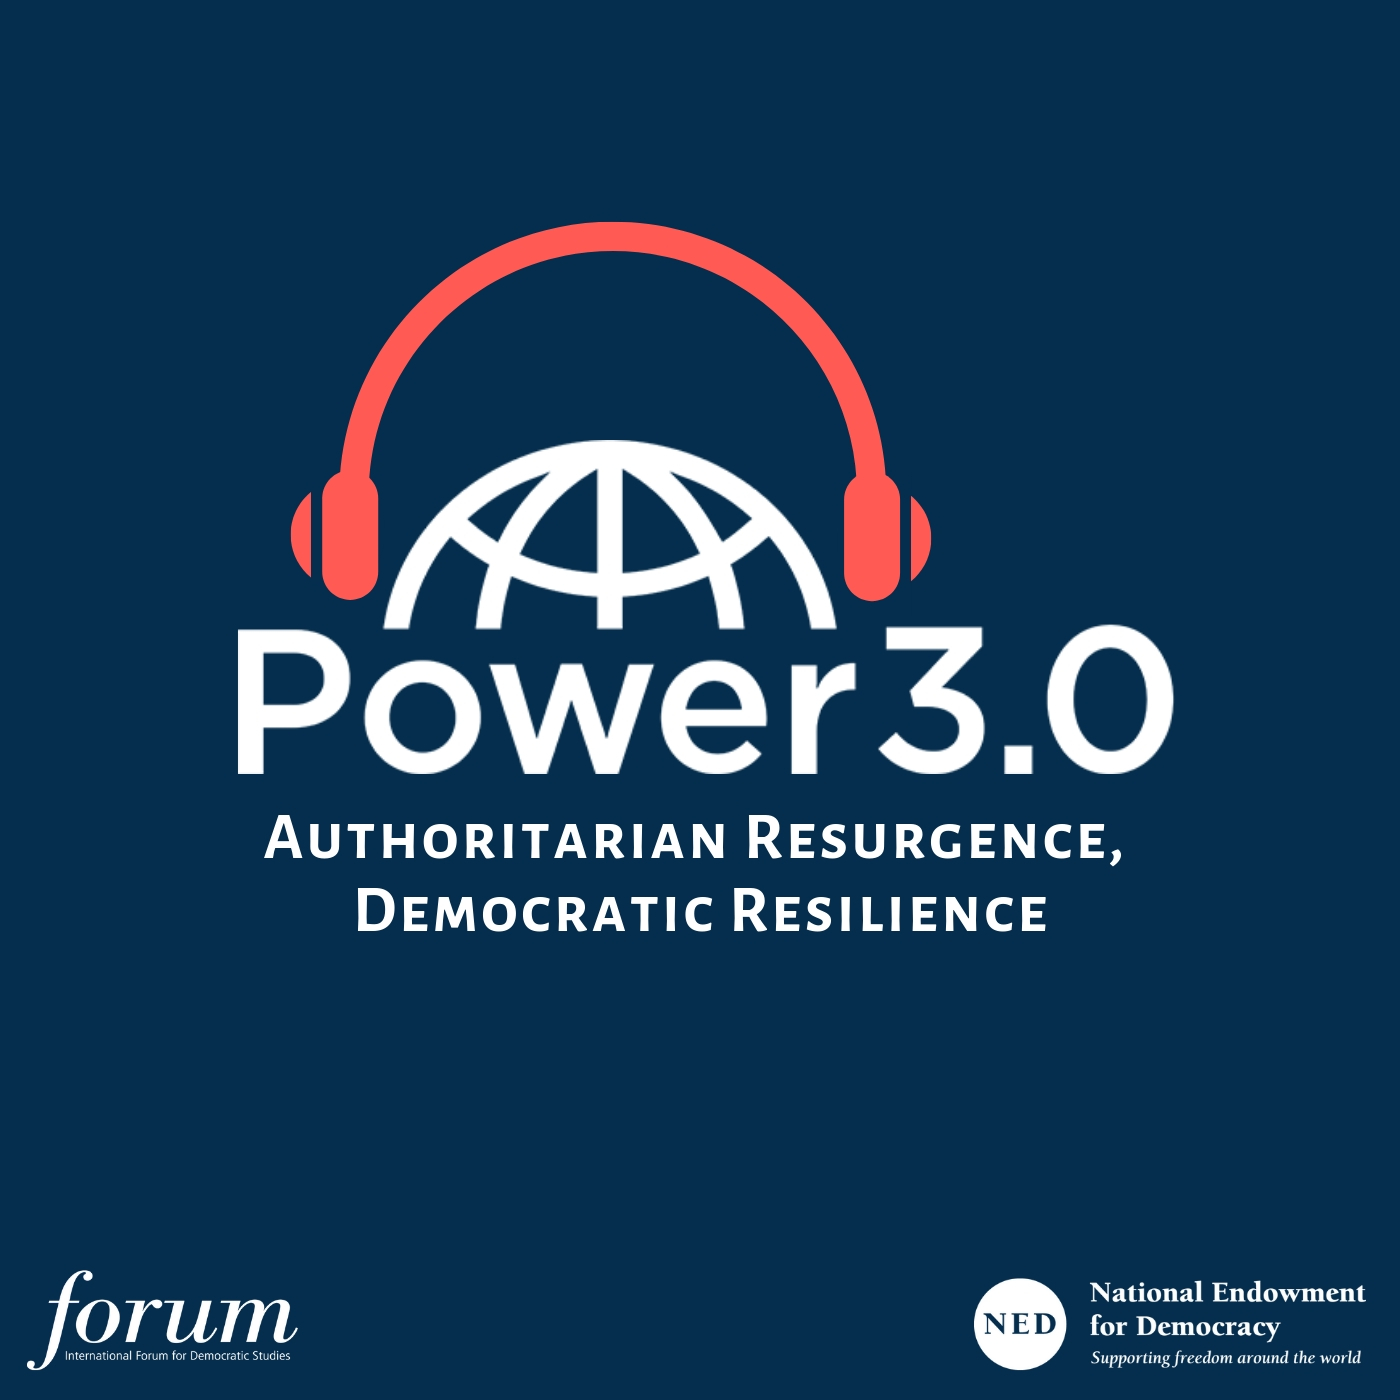 Power 3.0 | Authoritarian Resurgence, Democratic Resilience